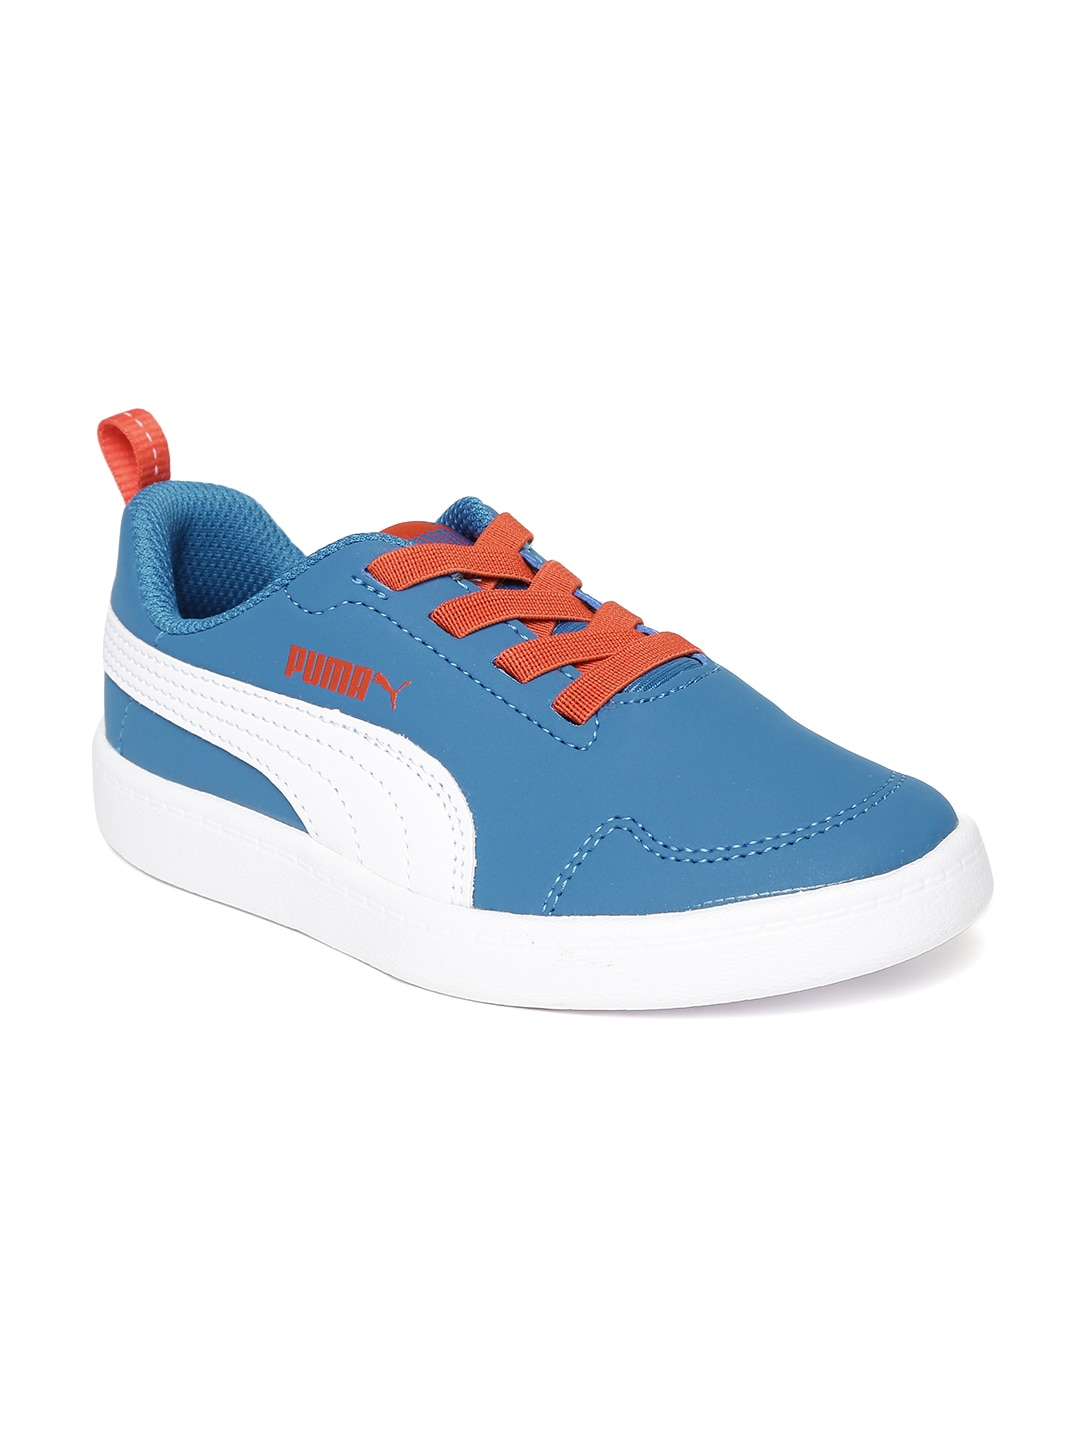 Puma Red Shoes - Buy Puma Red Shoes Online in India 734b3adba